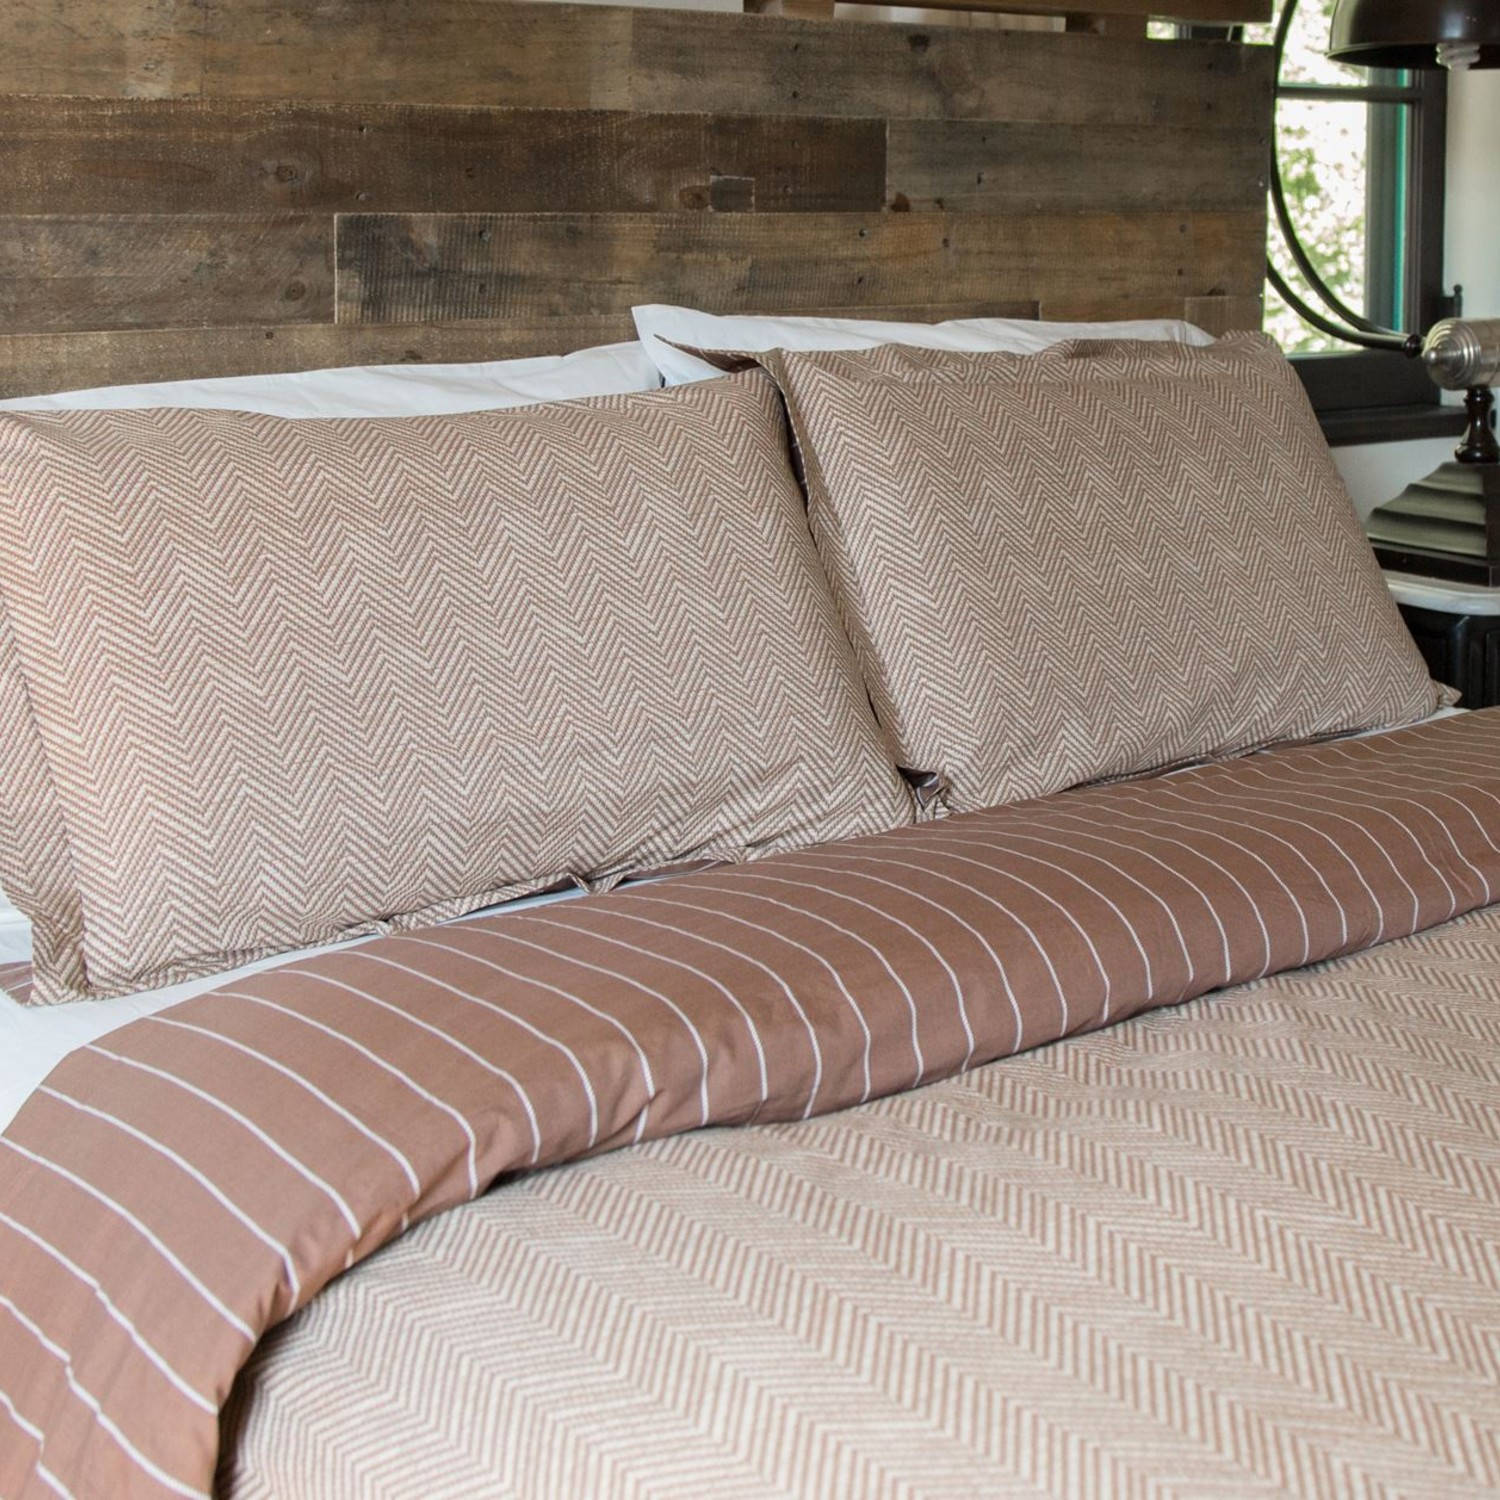 Fall Herringbone Comforter Set (Twin/Twin Extra Long) Pictures Gallery